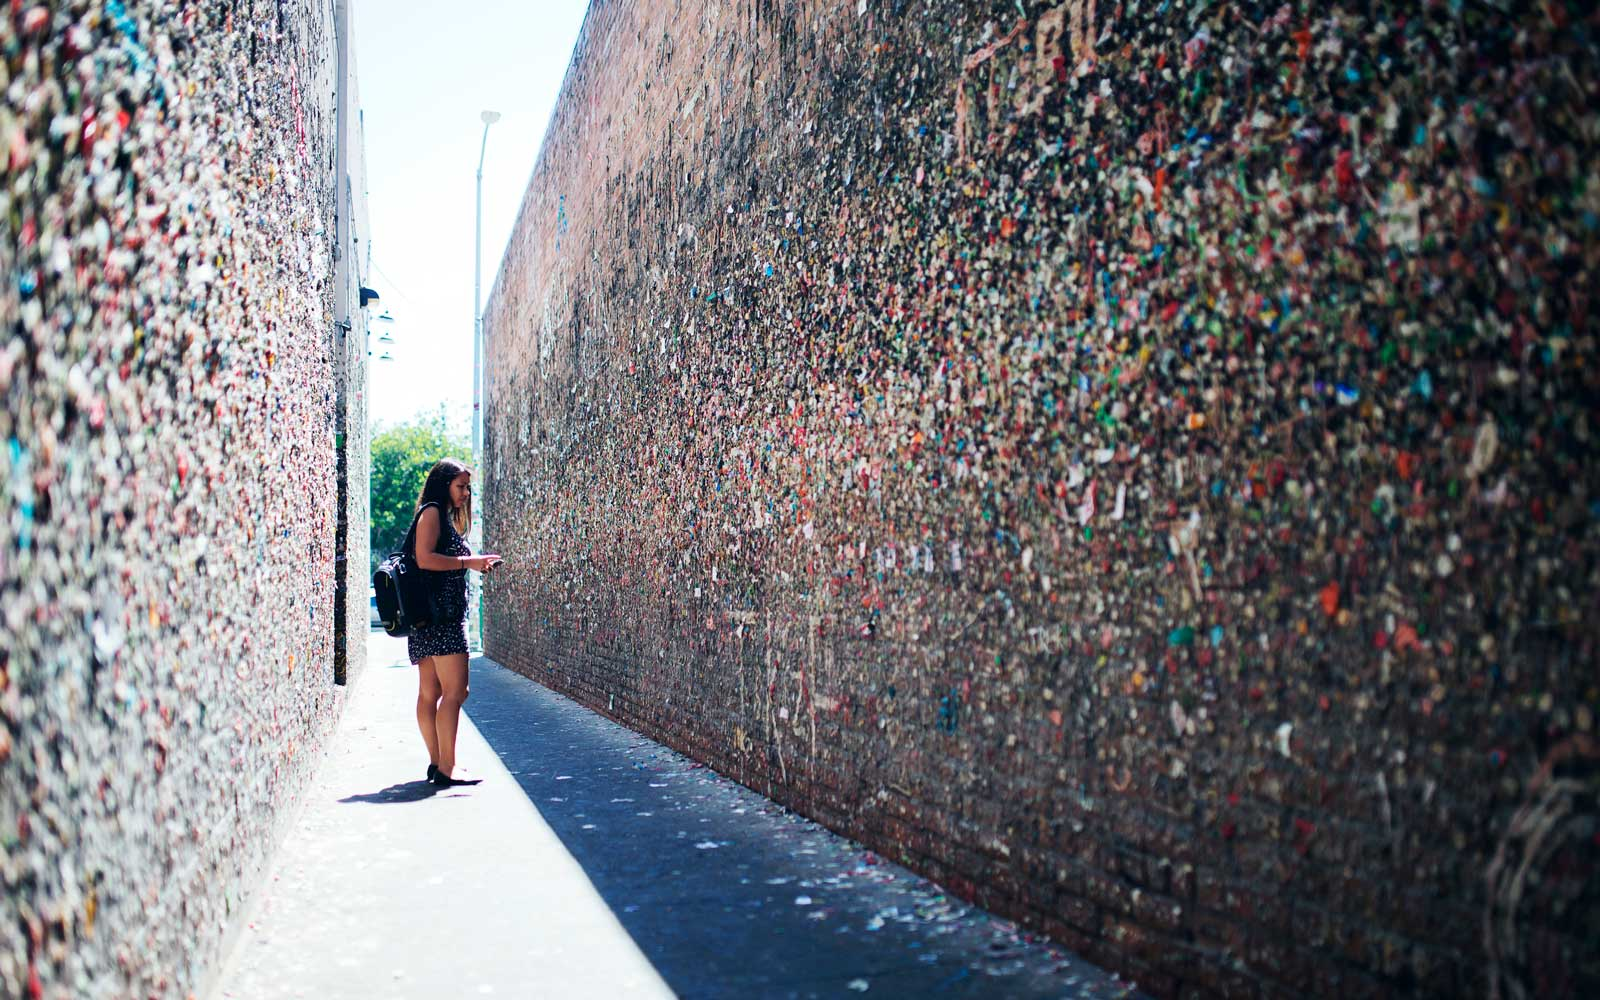 Bubblegum Alley, a quirky tourist attraction in San Luis Obispo, California.